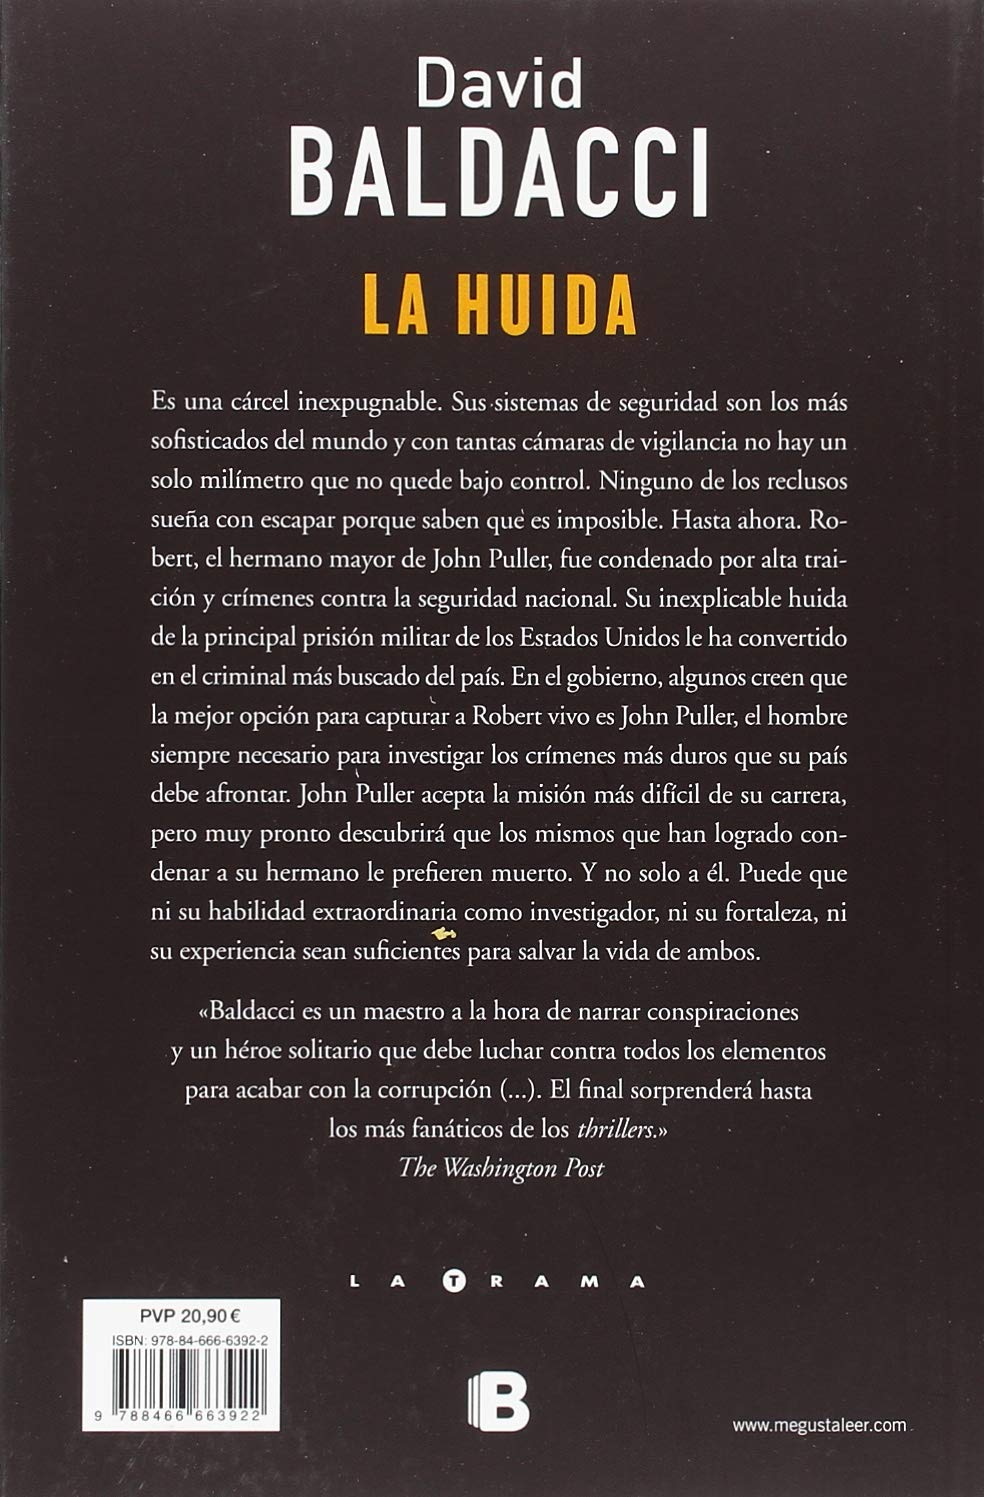 Amazon.com: La huída / The Escape (John Puller) (Spanish Edition) (9788466663922): David Baldacci: Books